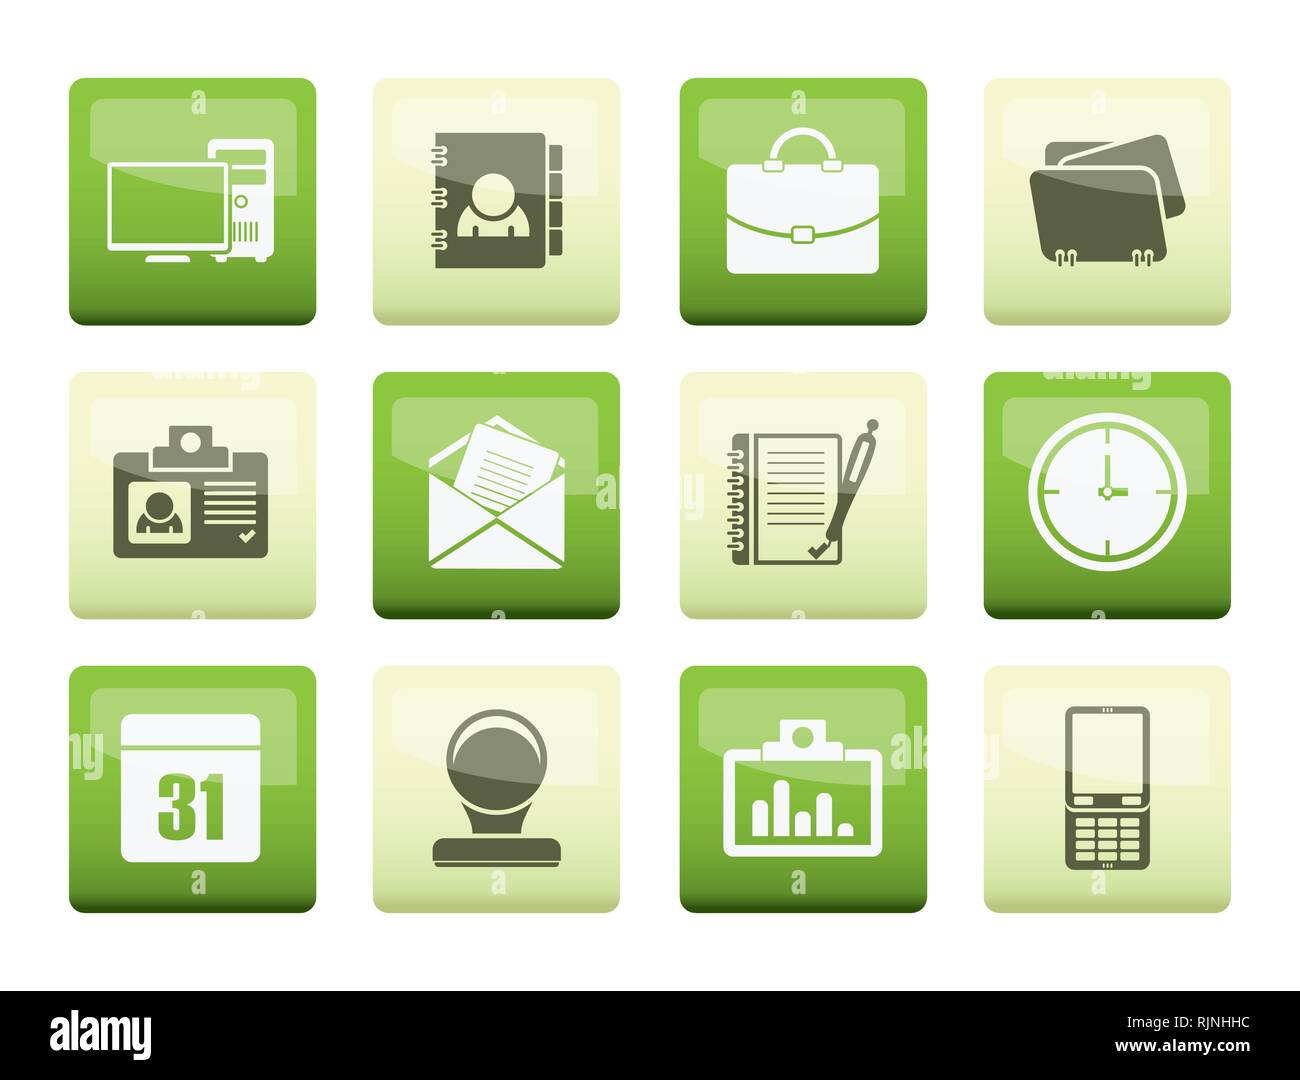 Web Applications, Business and Office icons, Universal icons over color background - vector icon set - Stock Image